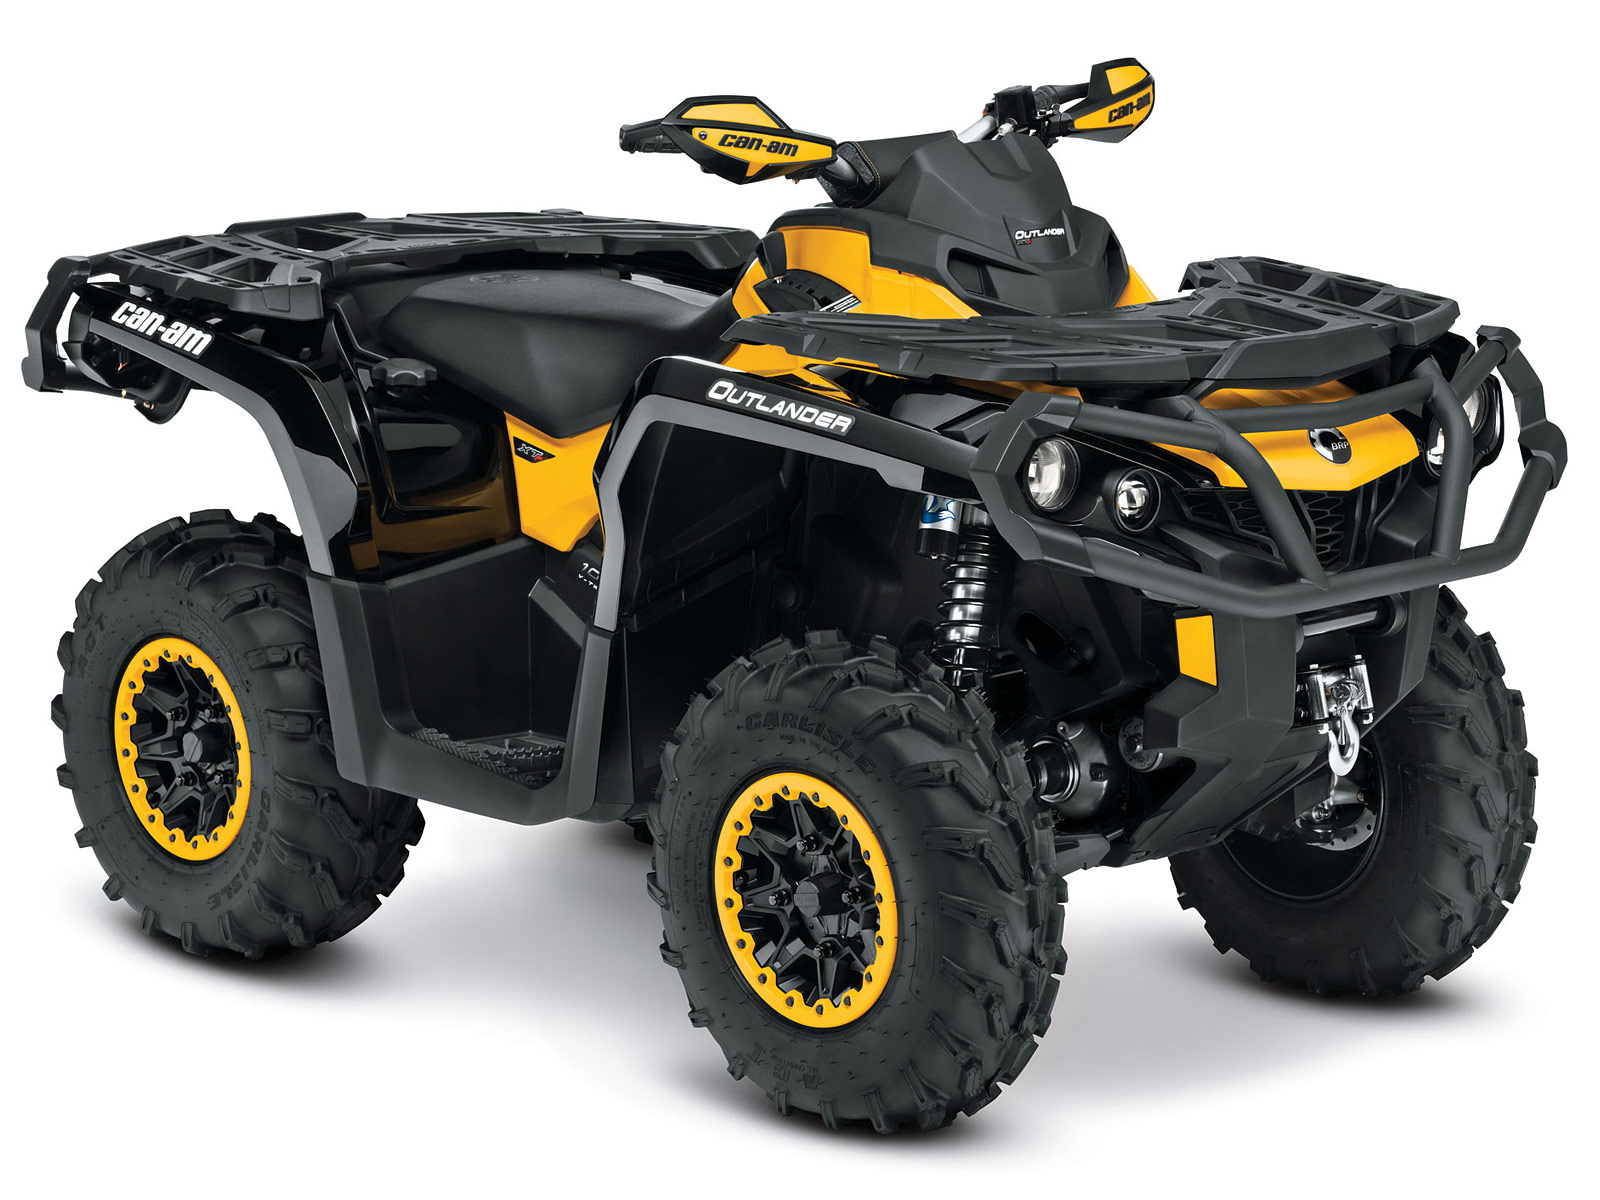 2013 can am outlander xt p 1000 atv review pictures specifications. Black Bedroom Furniture Sets. Home Design Ideas